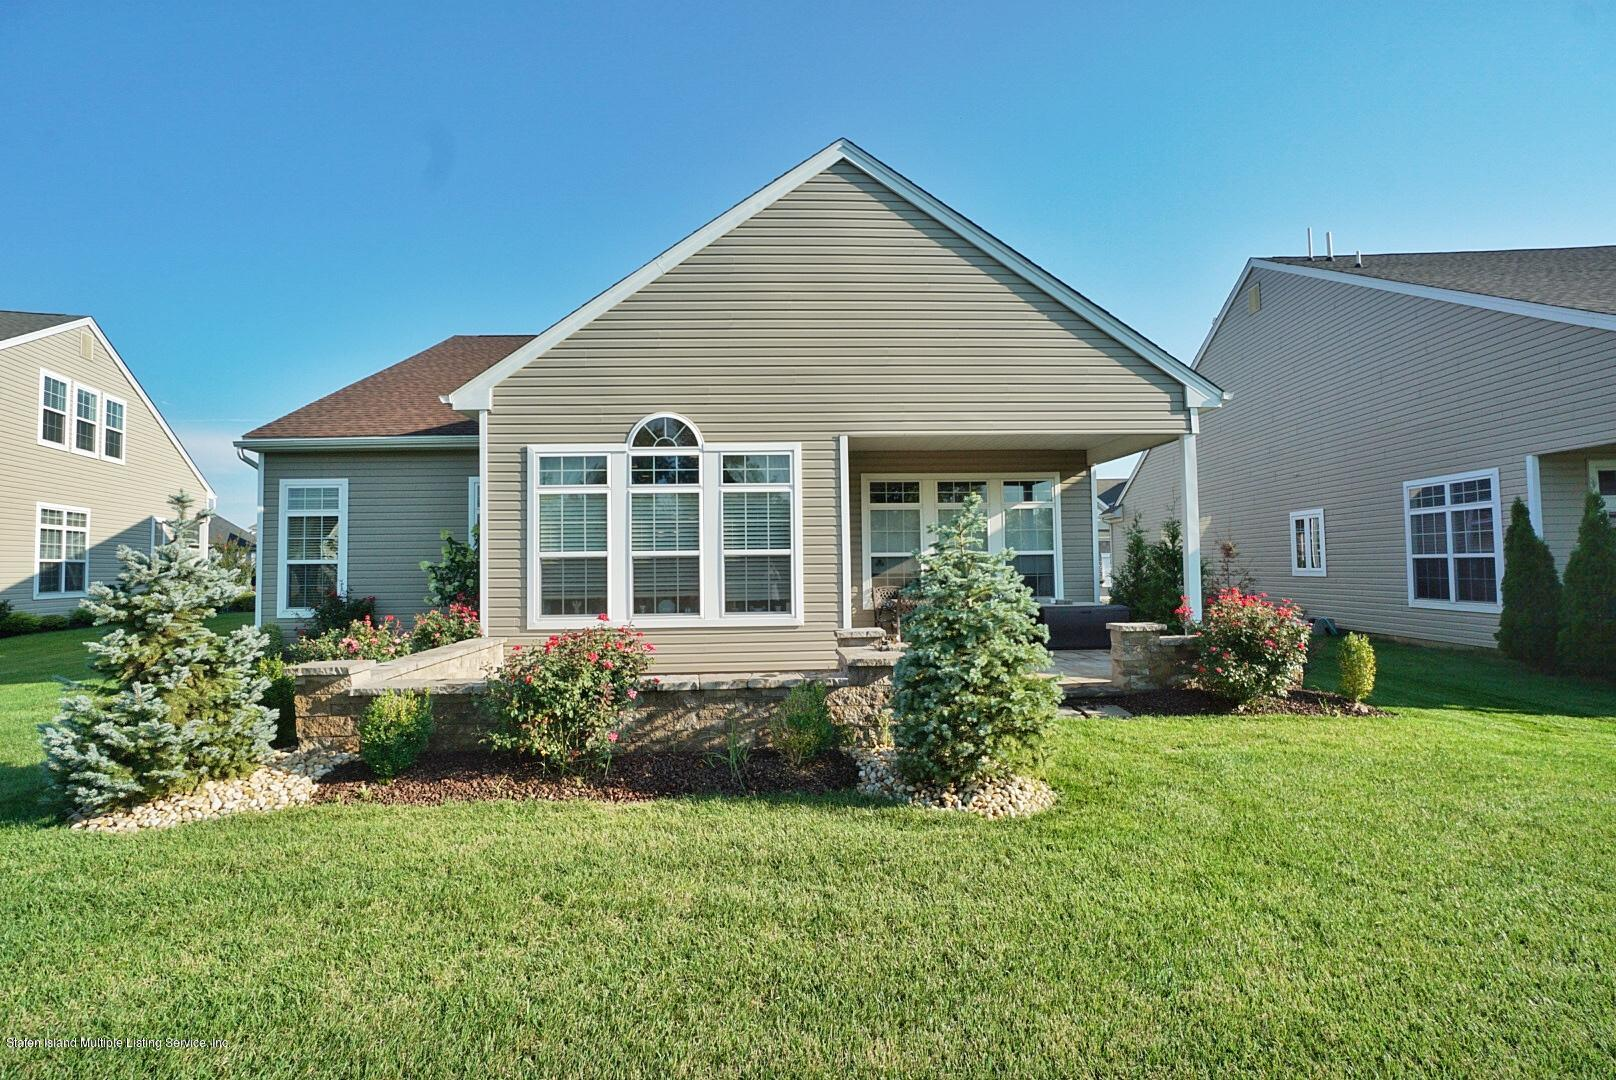 Single Family - Detached 141 Cobblestone Boulevard  Out Of Area, NY 08831, MLS-1139044-38